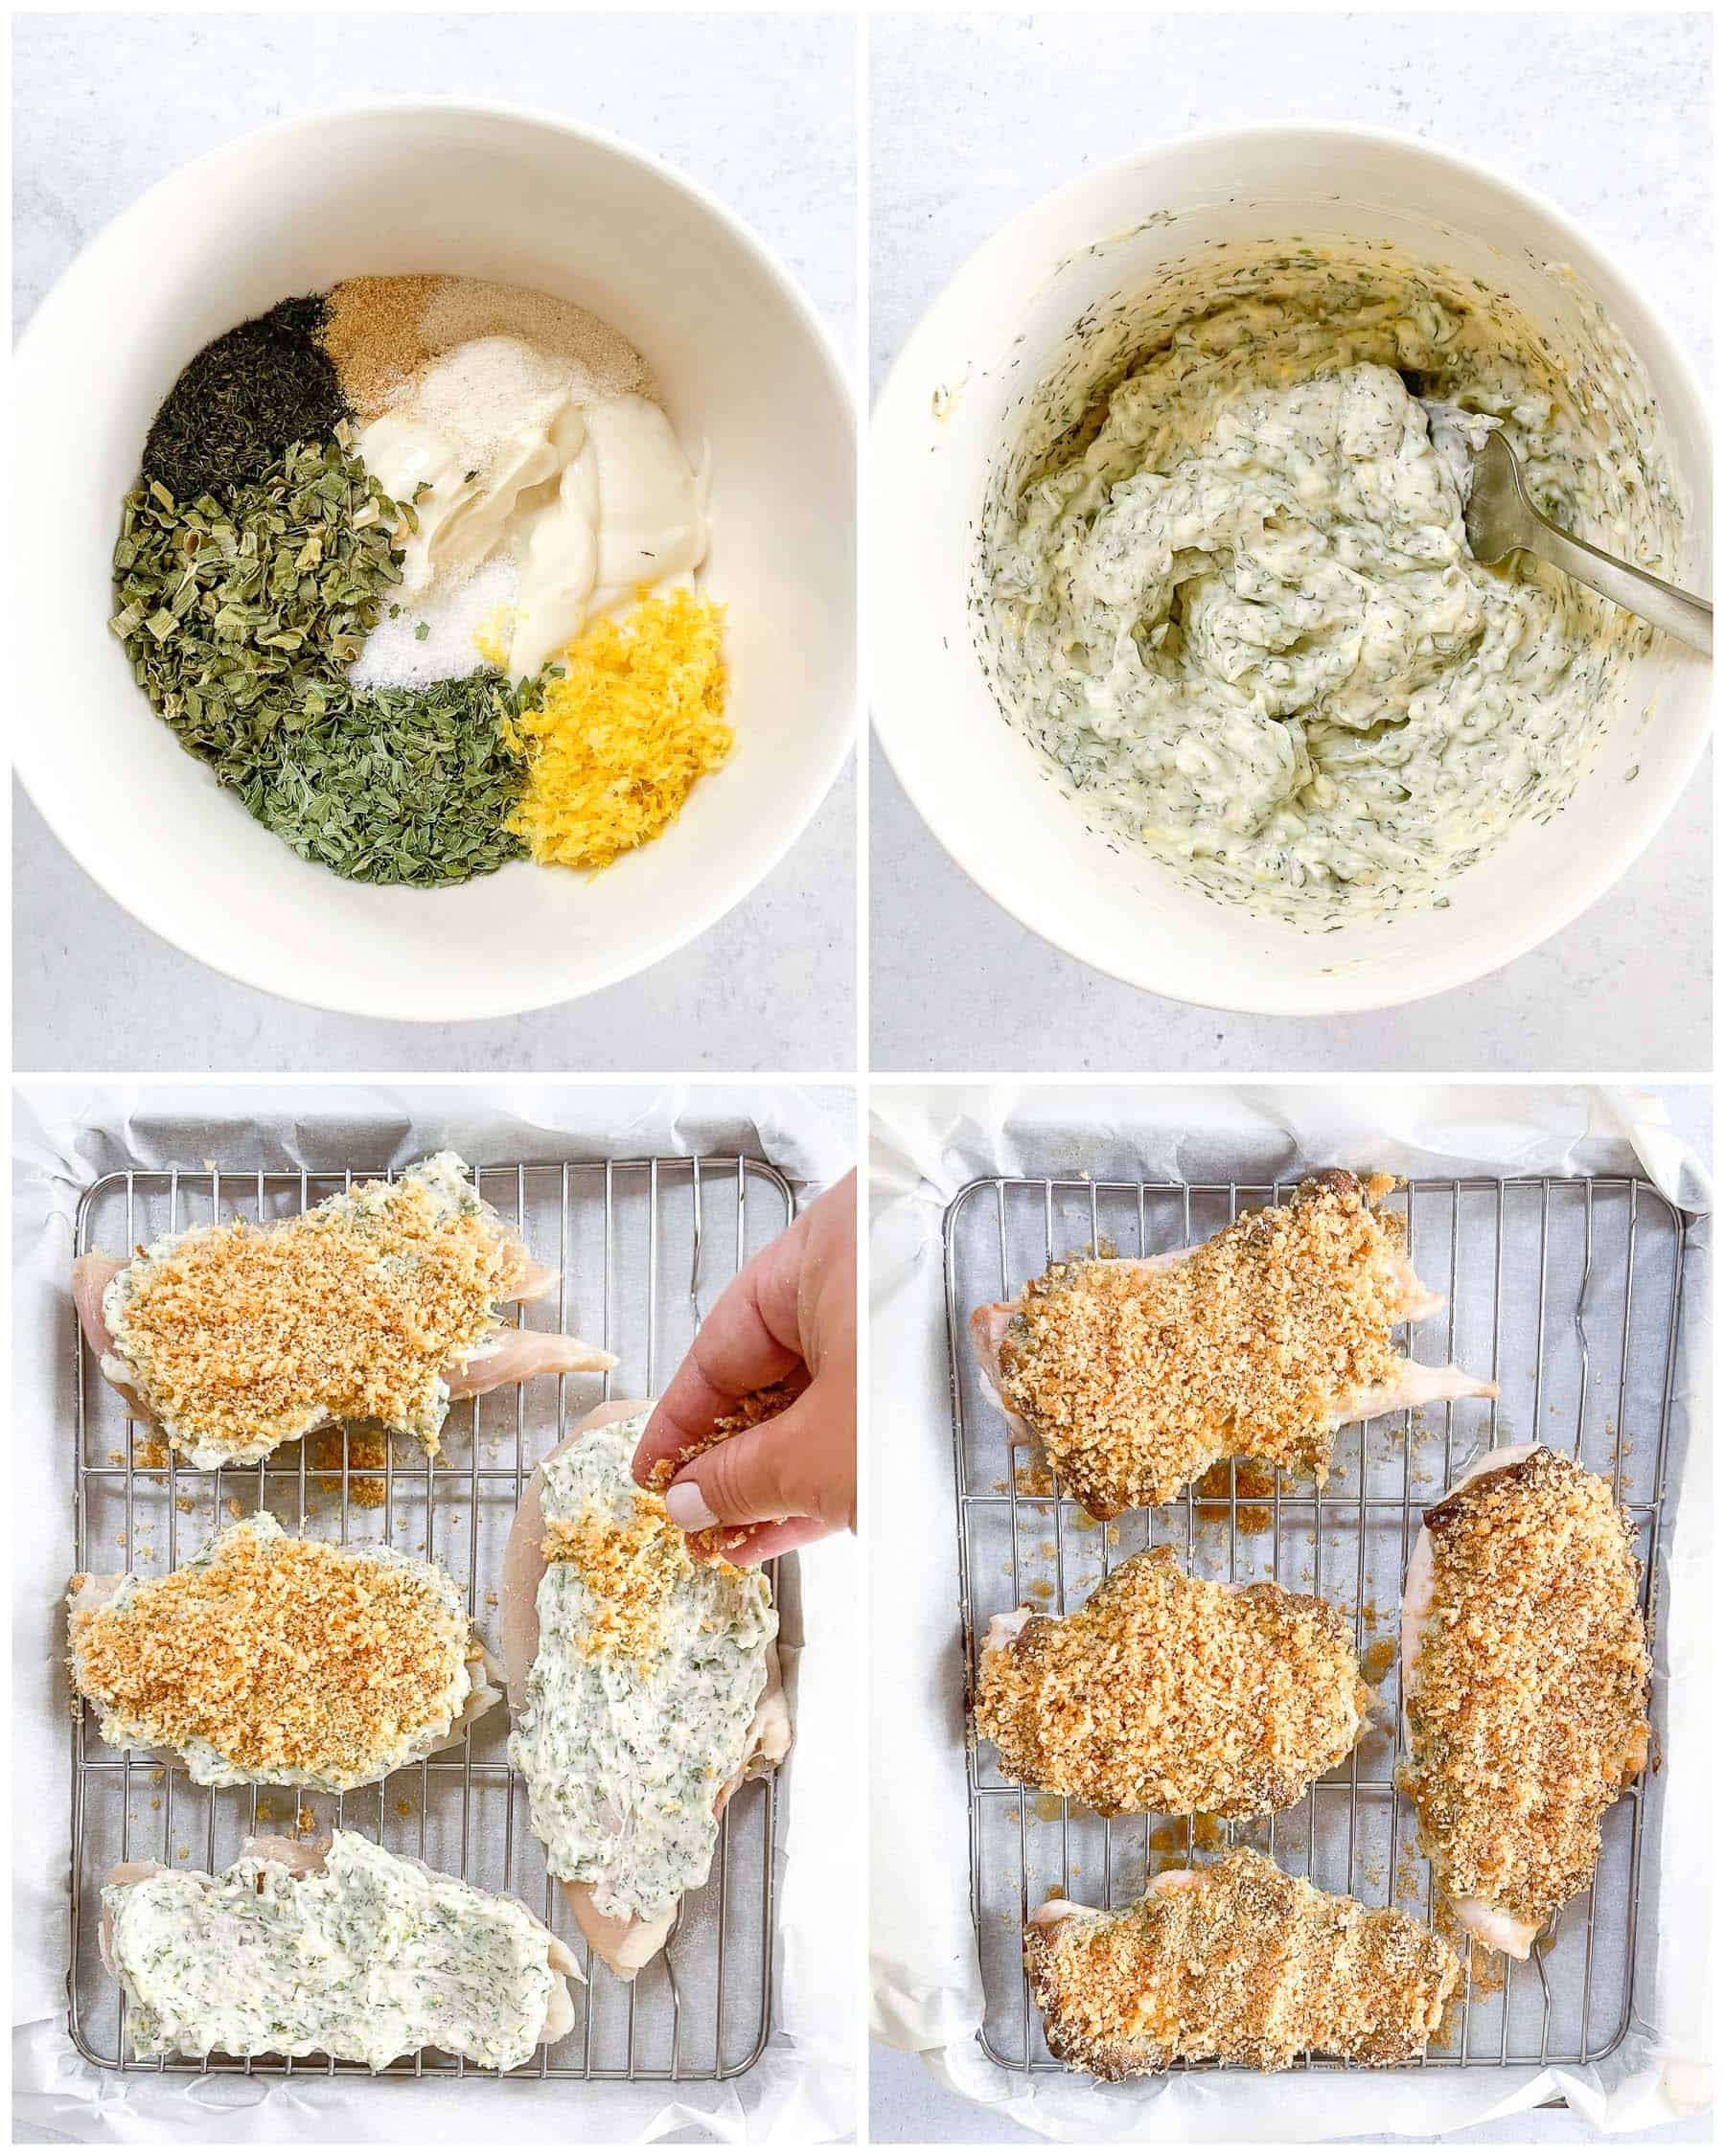 ingredients for keto crispy ranch chicken in two white bowls and two silver sheet pans with a white background